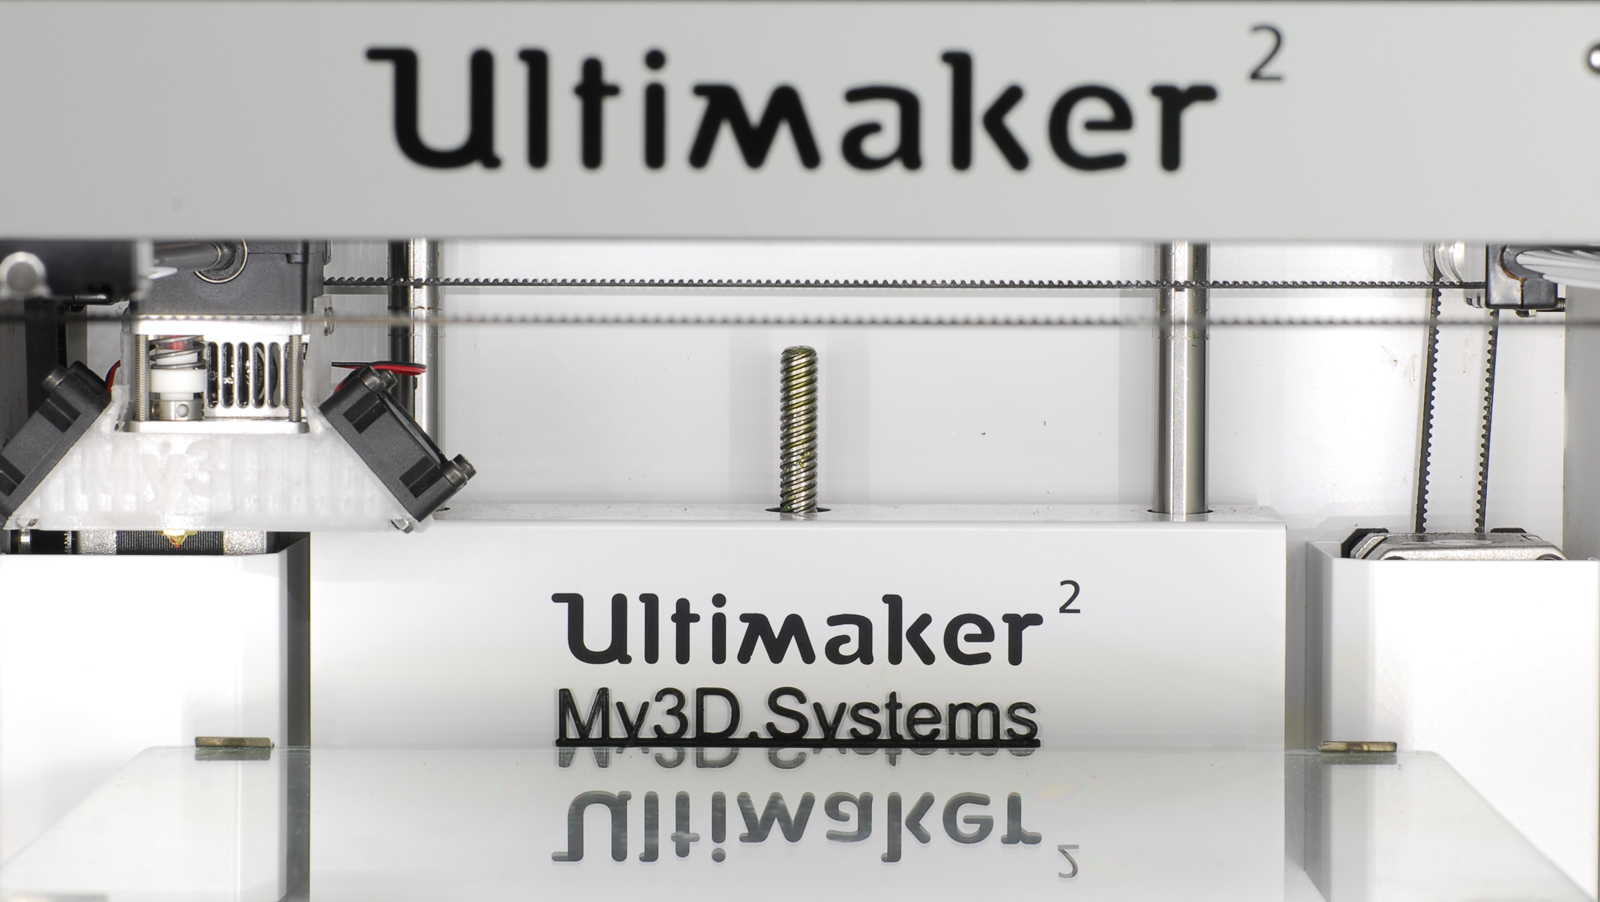 _DSC7166-ultimaker2-printer-1600.jpg